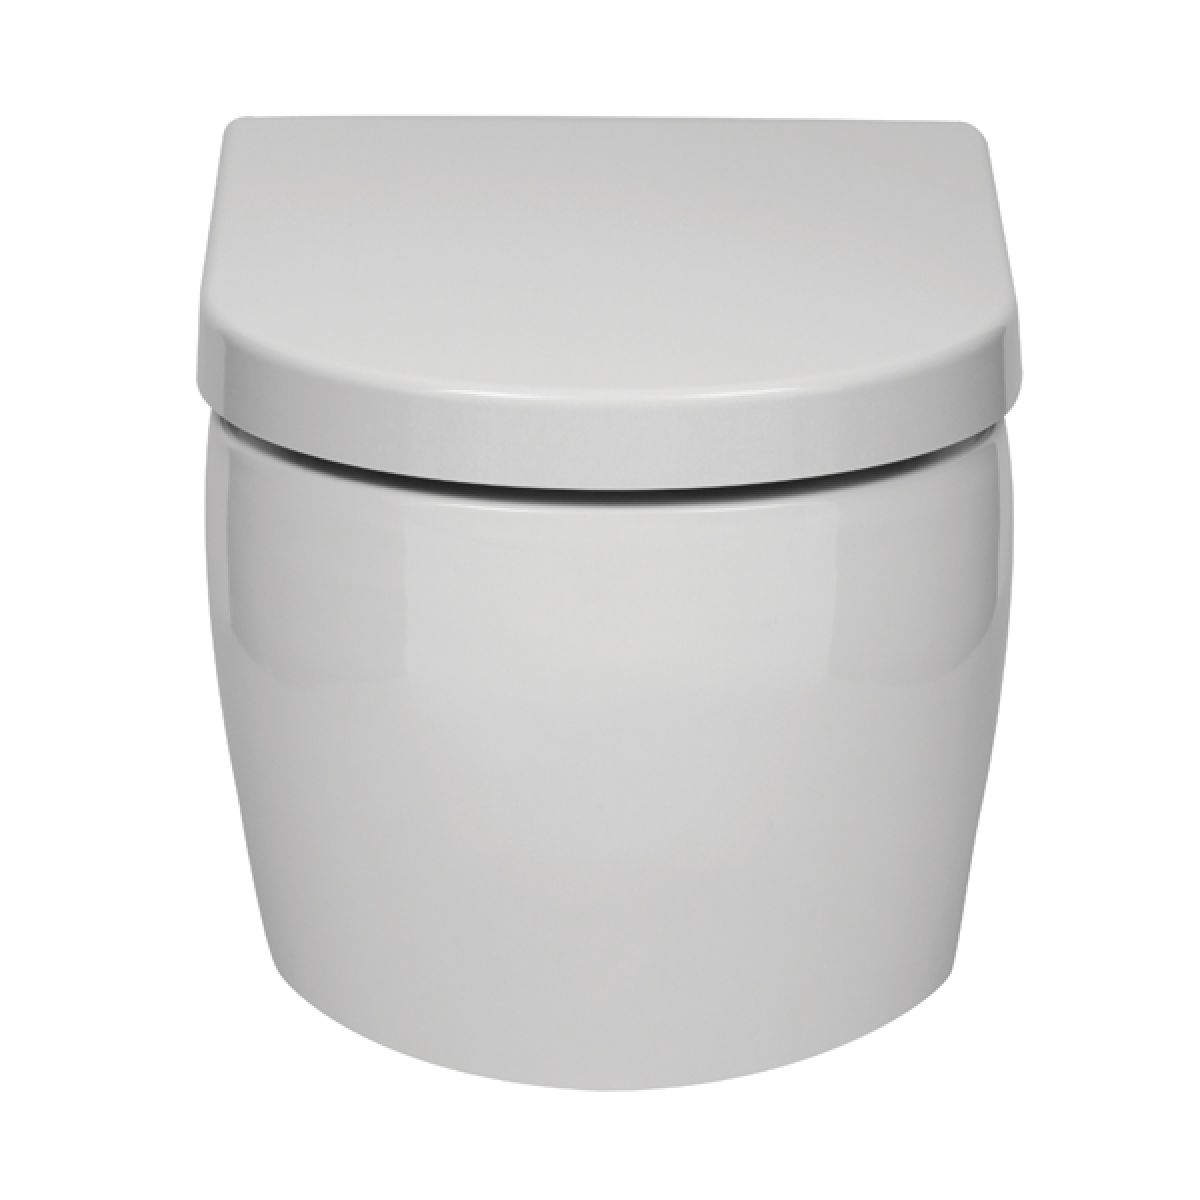 Frontline Emme Wall Hung Toilet with Soft Close Seat